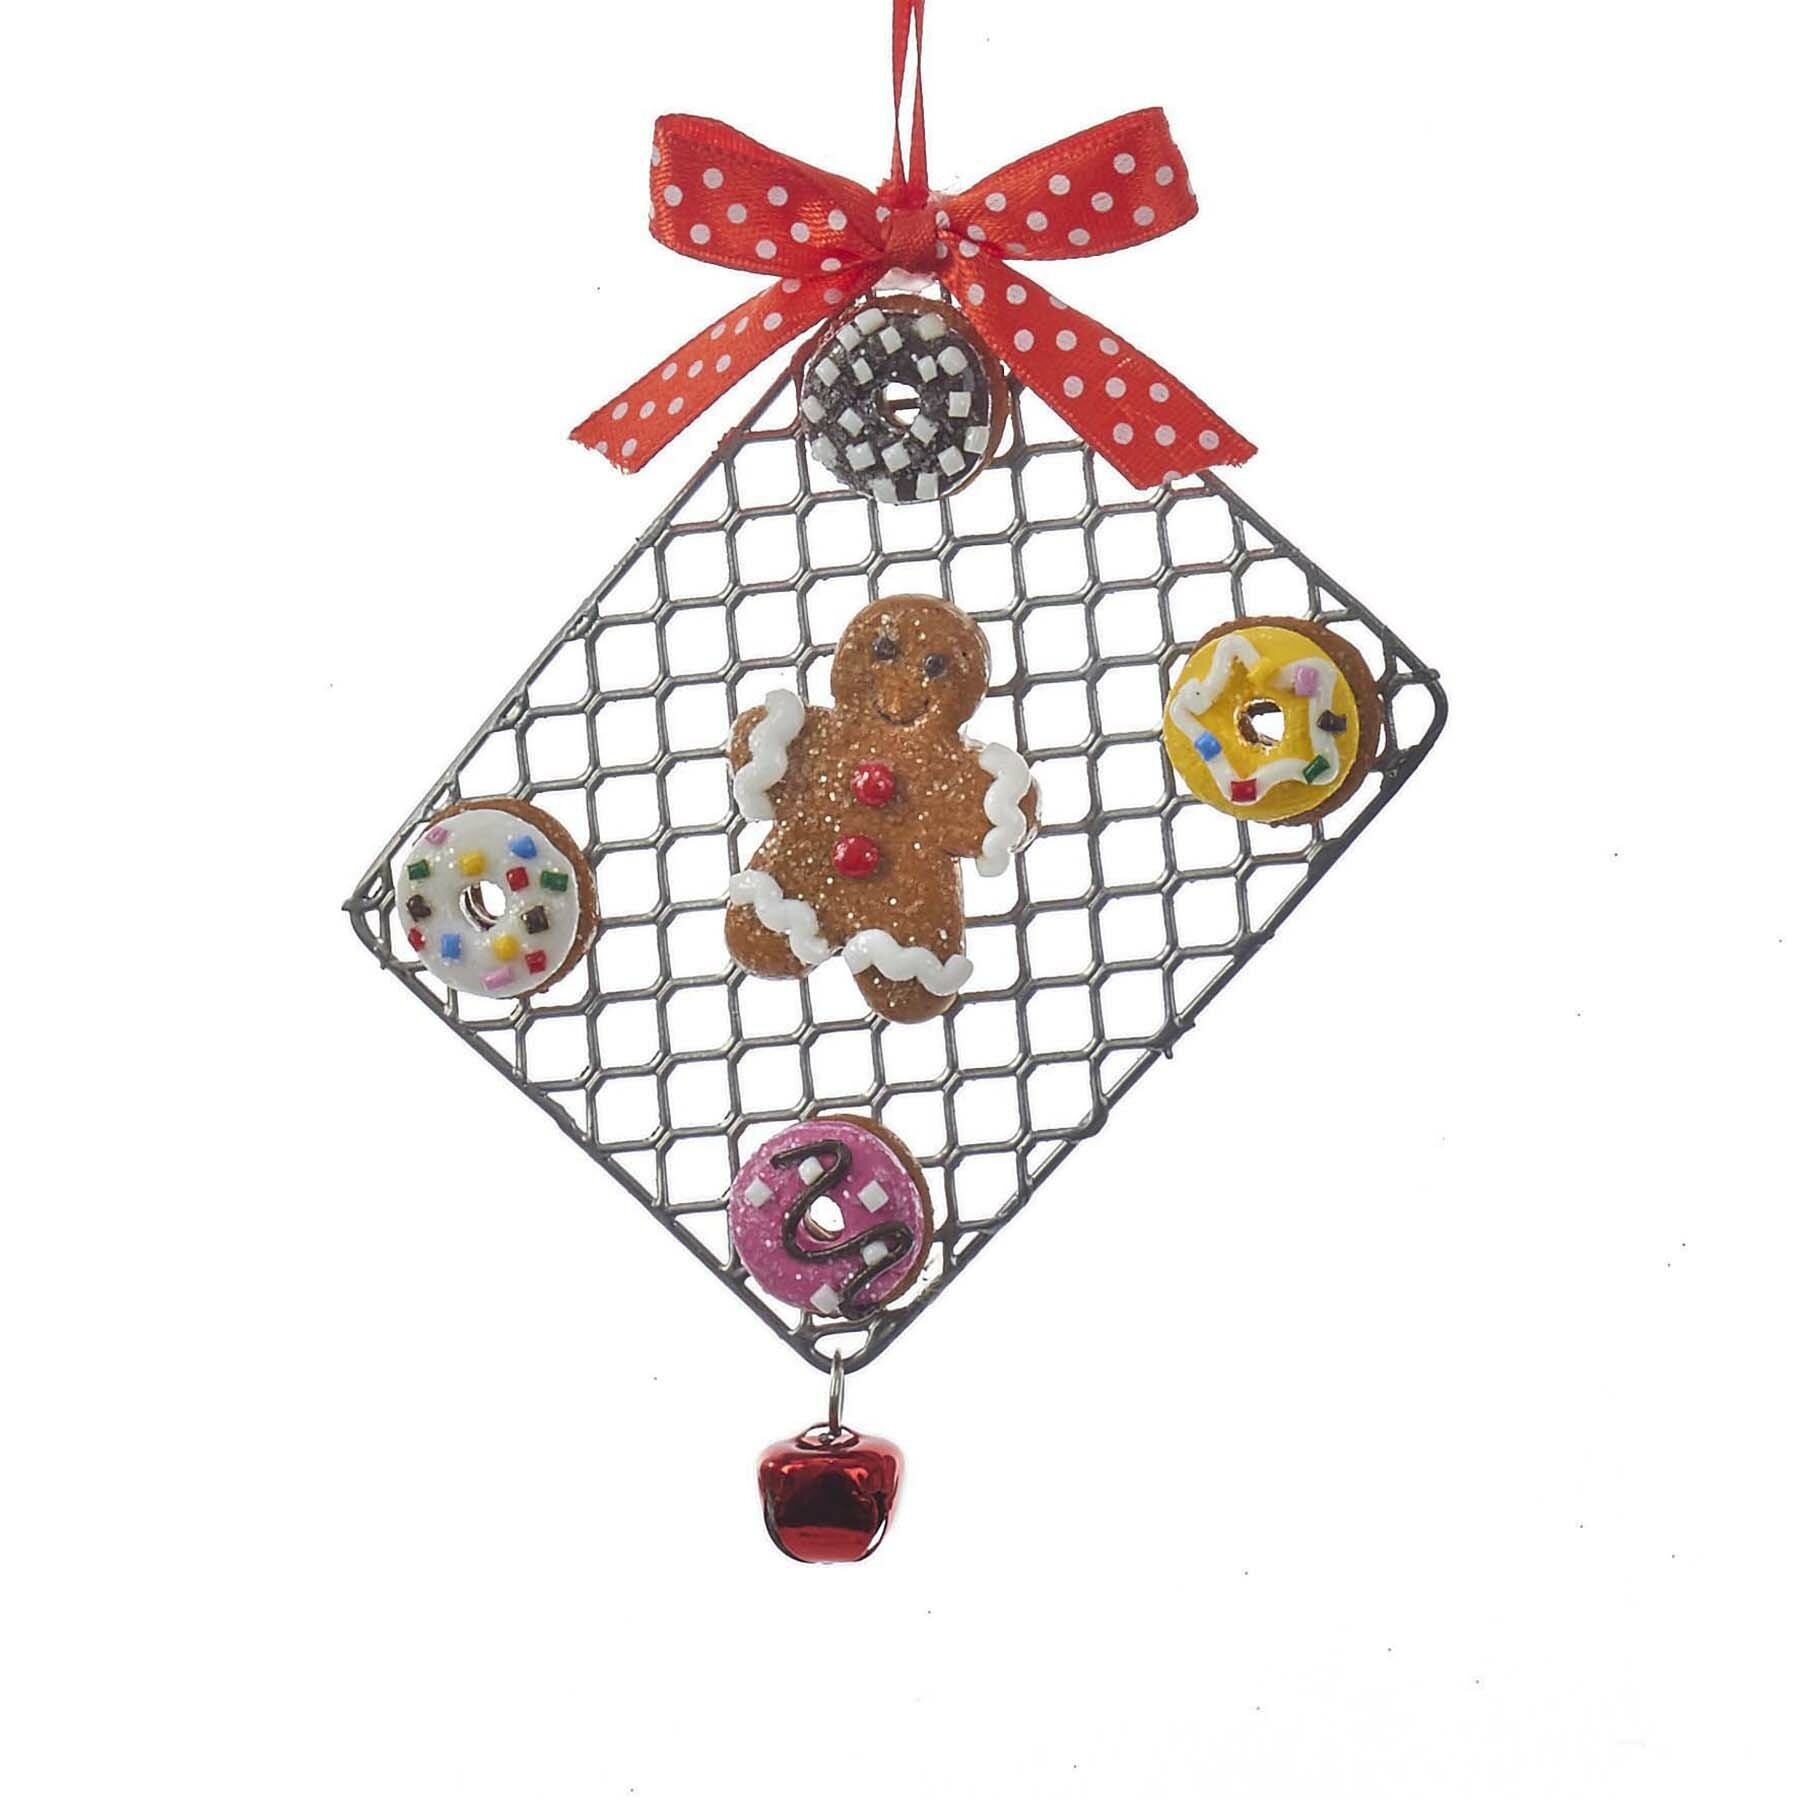 Gingerbread Man On Tray Hanging Figurine Ornament Reviews Birch Lane